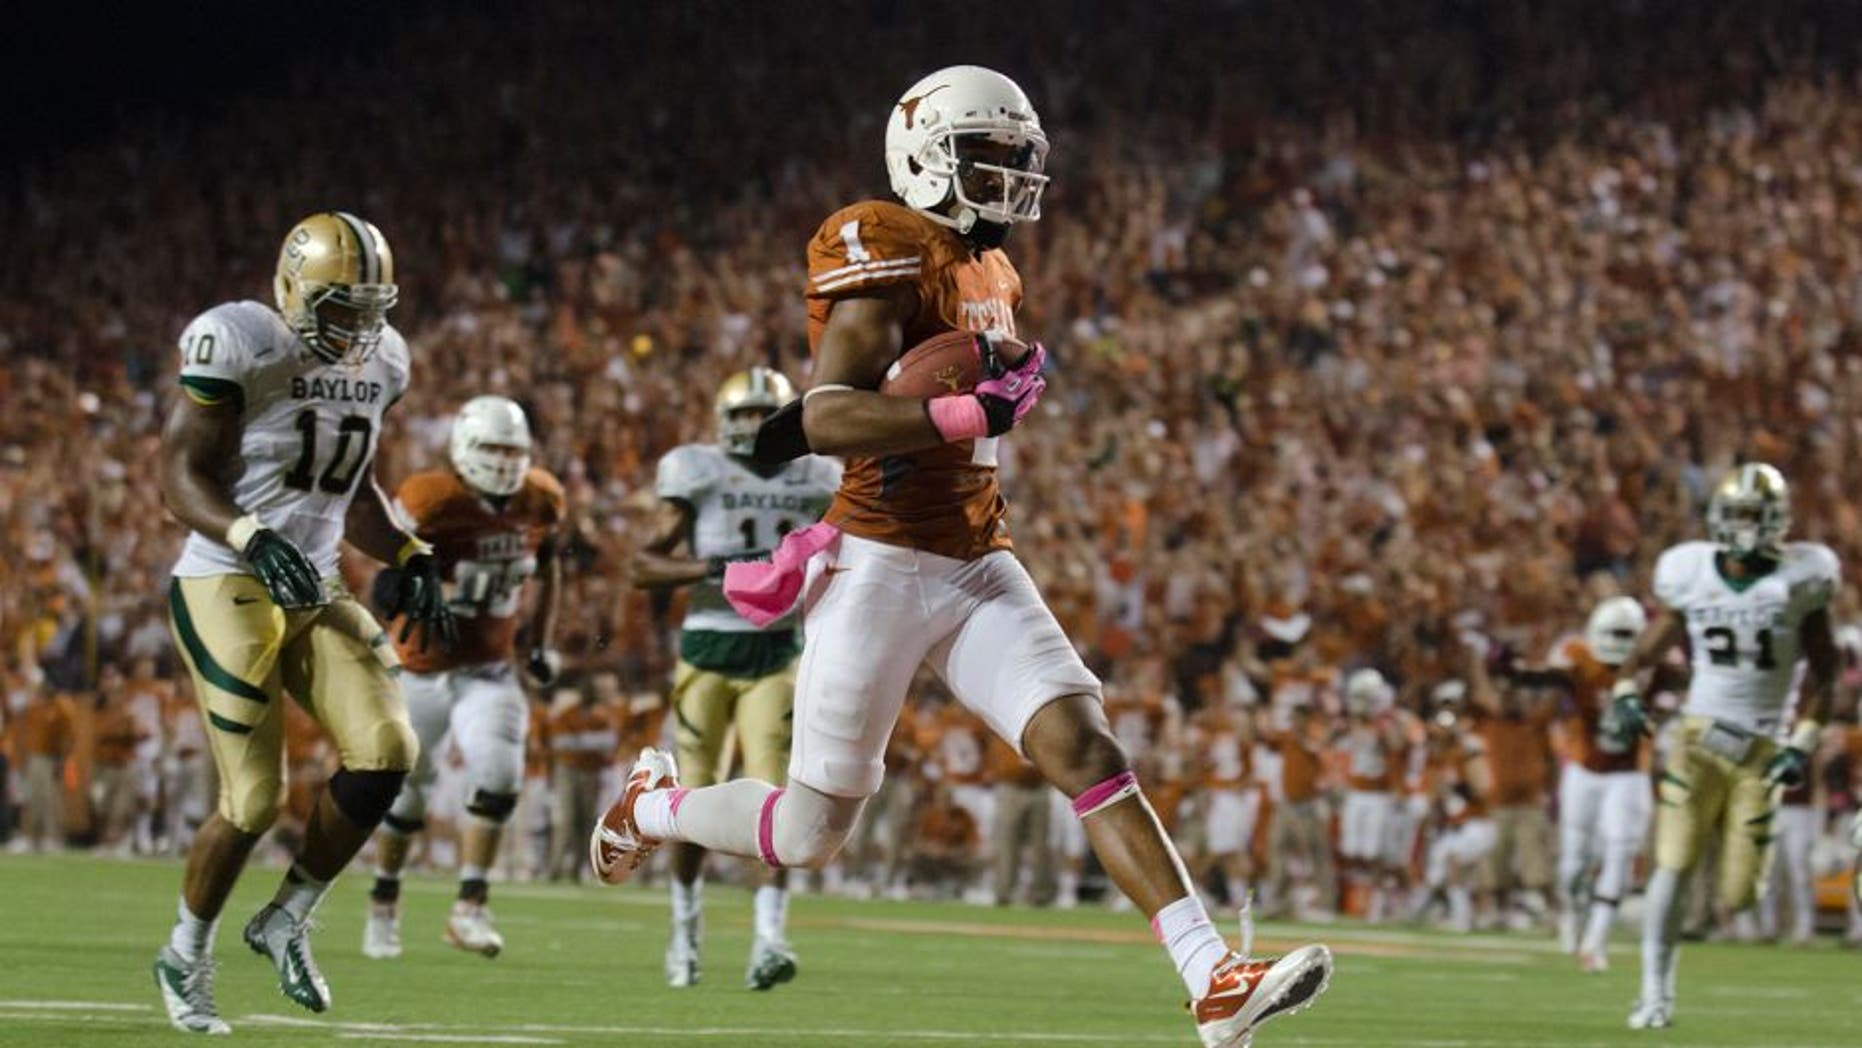 Oct 20, 2012; Austin, TX, USA; Texas Longhorns wide receiver Mike Davis (1) scores a touchdown against the Baylor Bears during the second half at Darrell K Royal-Texas Memorial Stadium. Texas beat Baylor 56-50. Mandatory Credit: Brendan Maloney-USA TODAY Sports